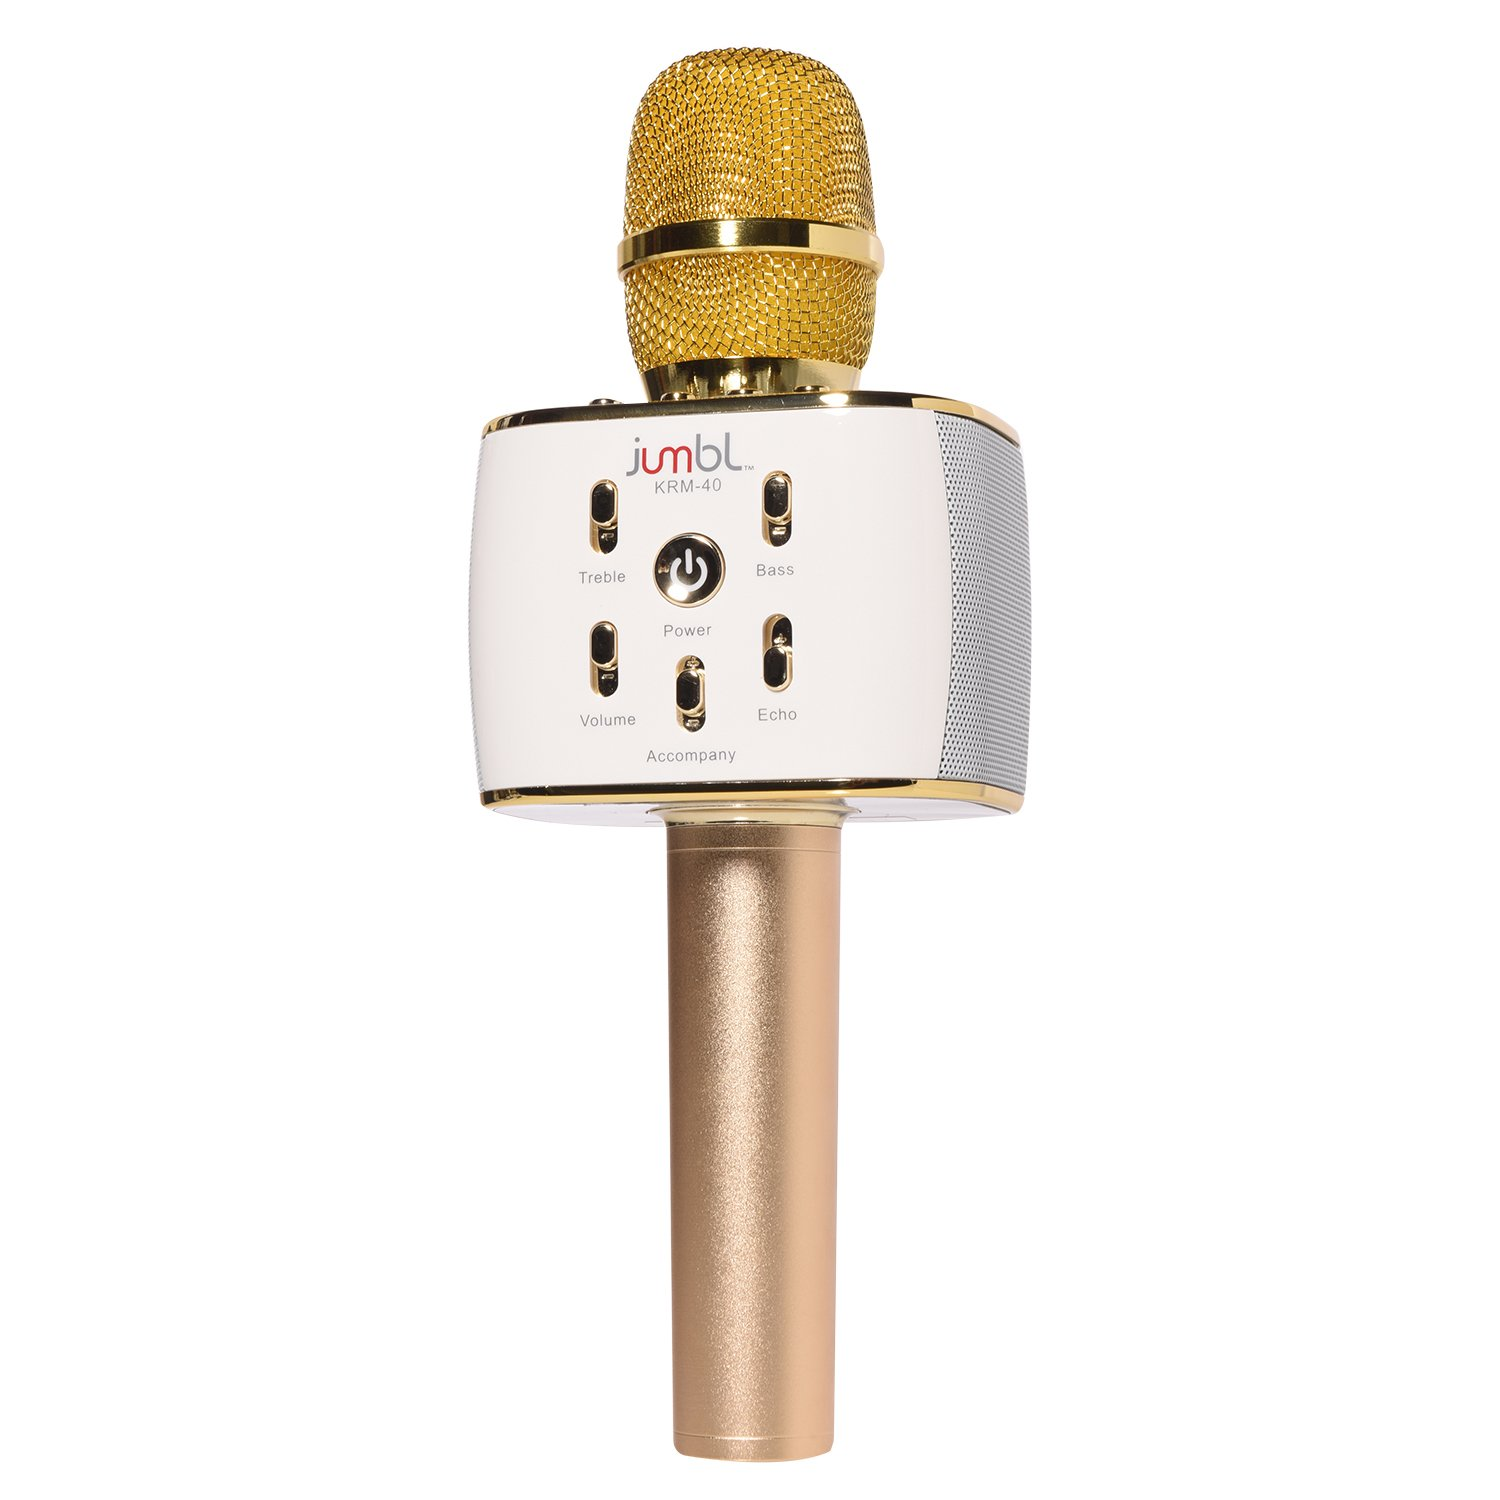 Jumbl Karaoke Microphone with Bluetooth Wireless Speaker Rechargeable Mini Handheld MIC KTV Machine Supports iOS and Android Smartphone iPad Tablet